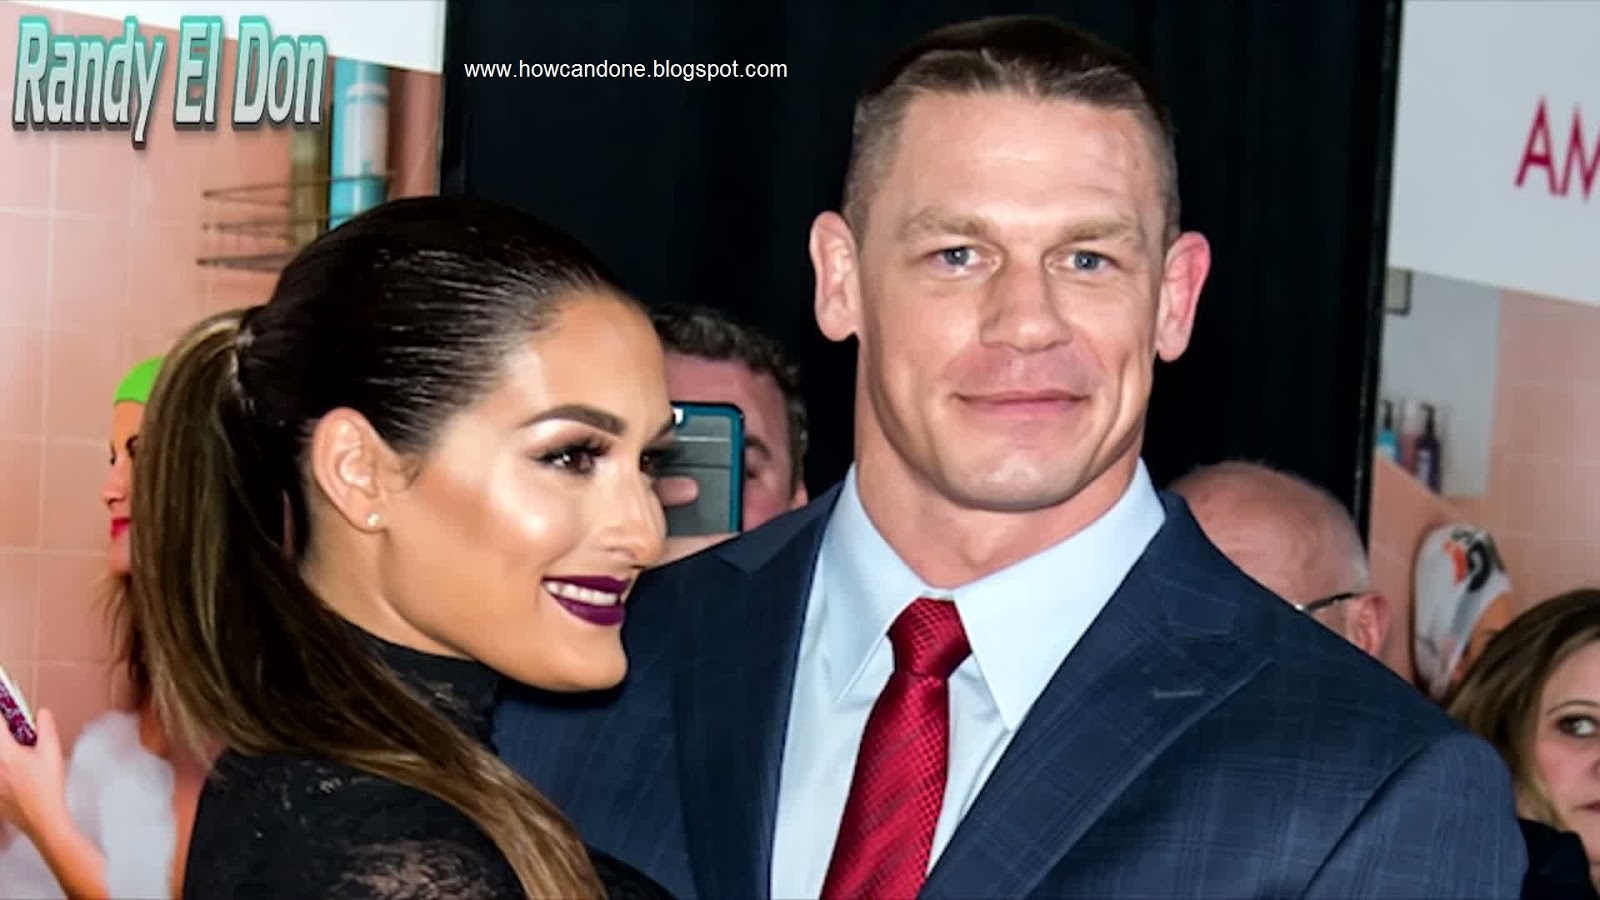 who is dating or married in the wwe Are any wwe superstars married to wwe divas  the ones dating miz and maryse, cm punk and former wwe diva lita, john morrison and melina.